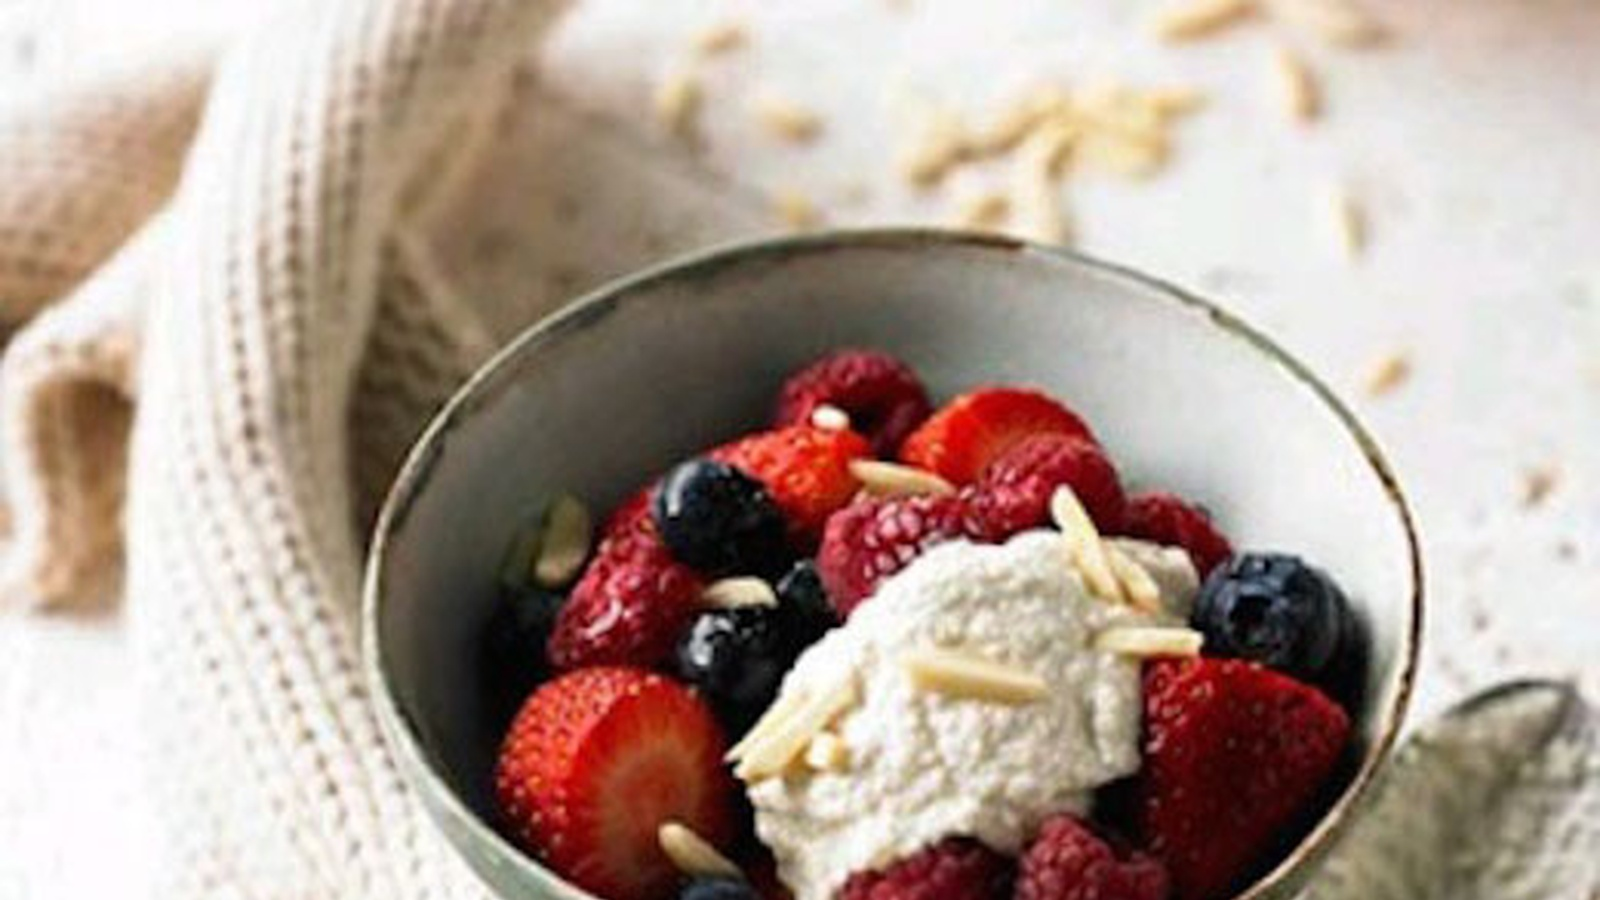 Berries In Apple Cider Vinegar With Cashew Nut Cream